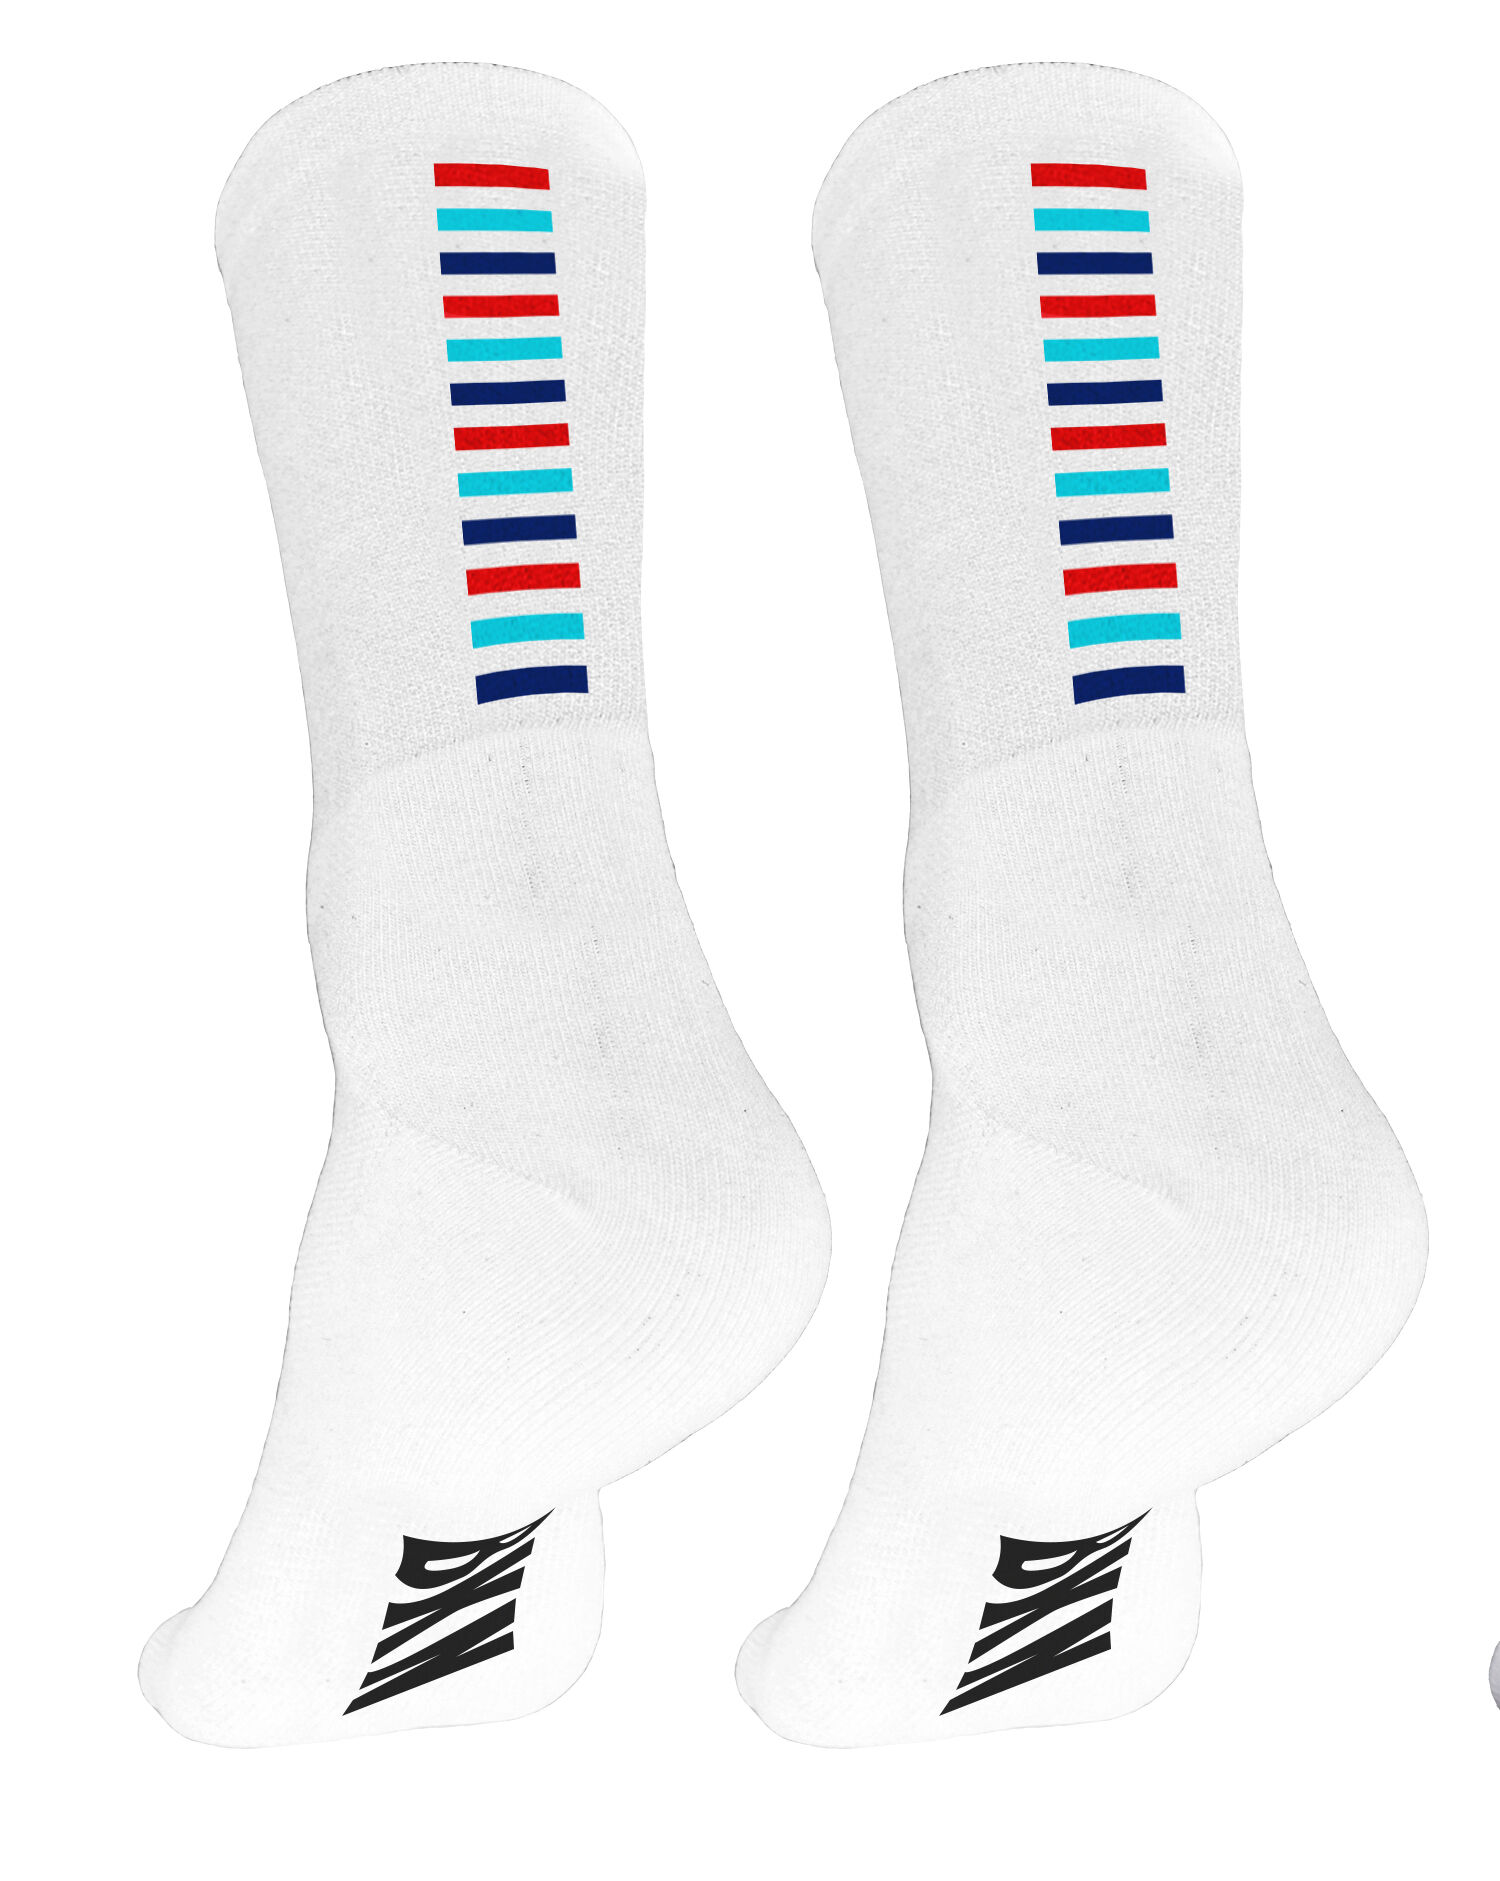 White with 3 coloured steps-stripes